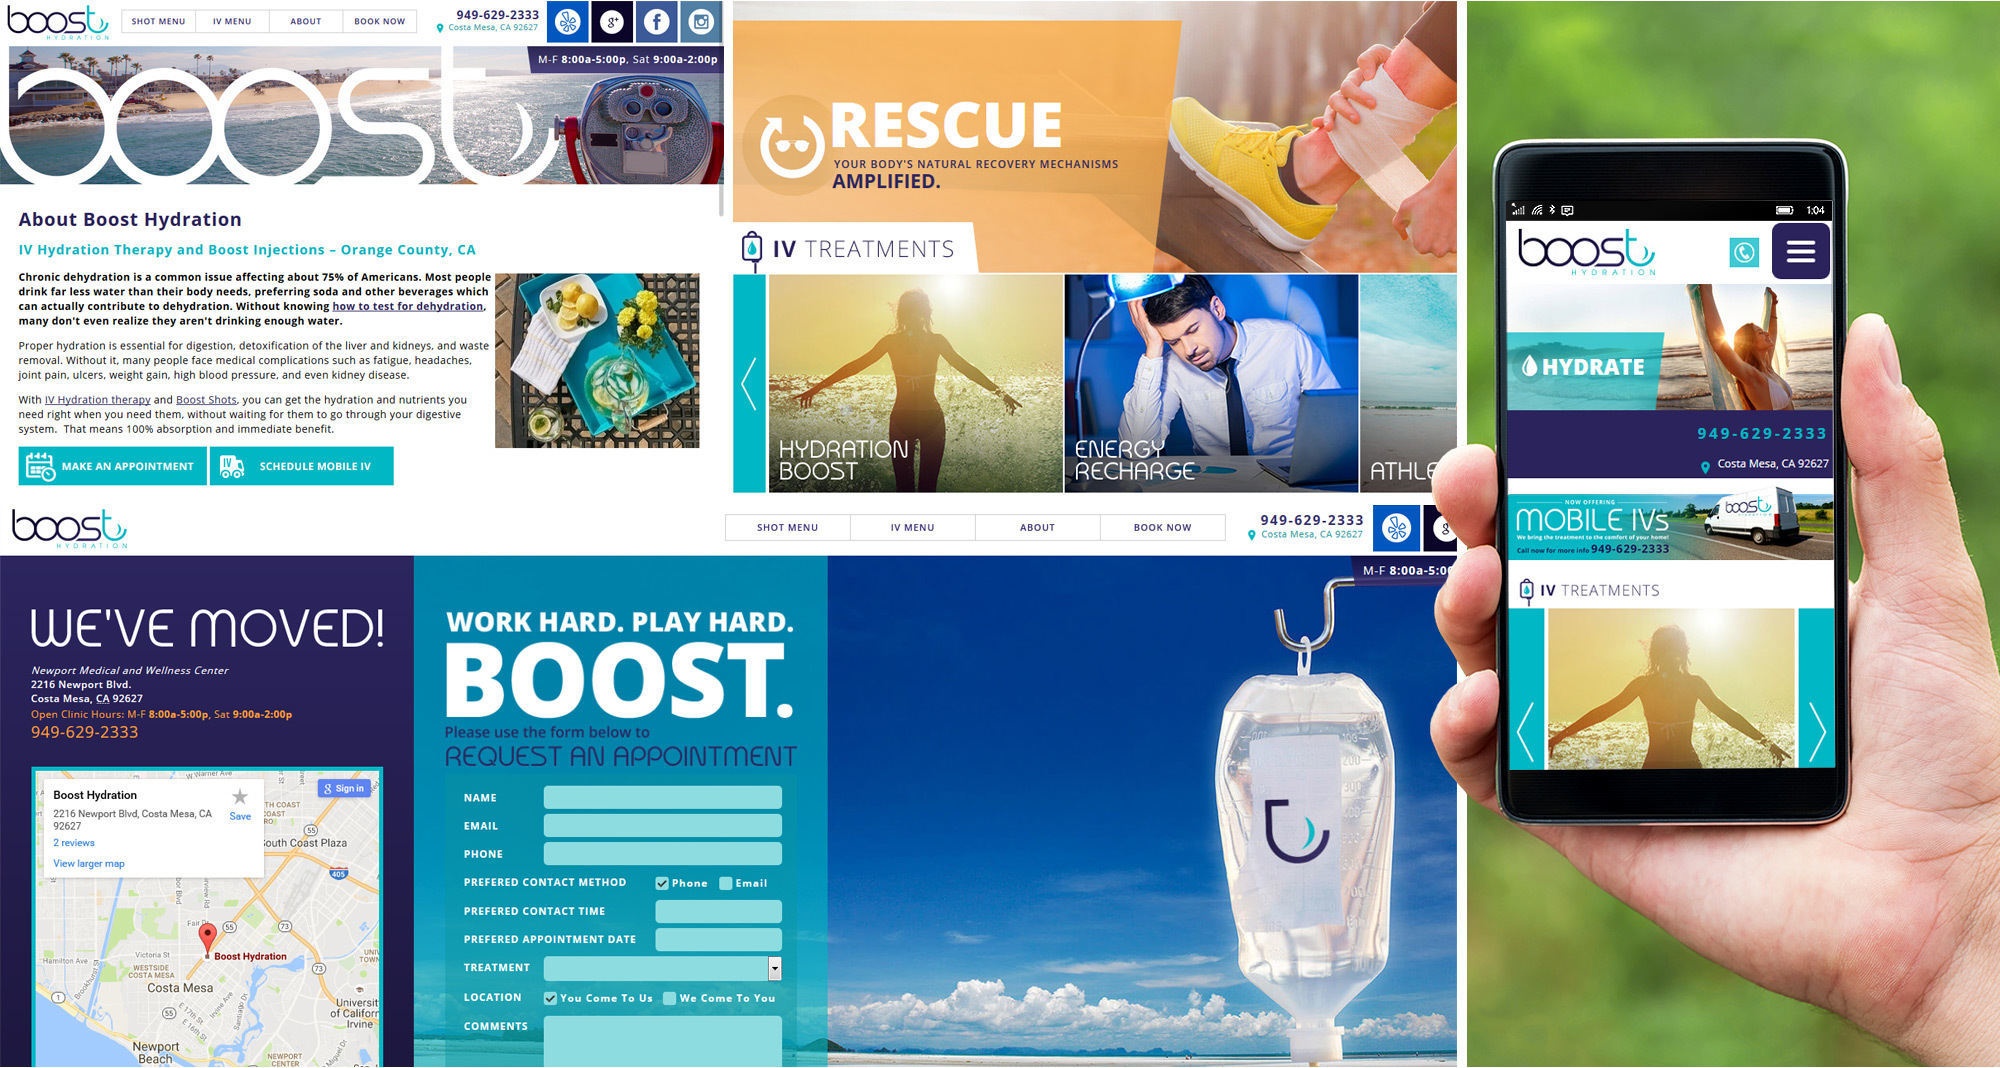 Boost Hydration Website Designed by iNET